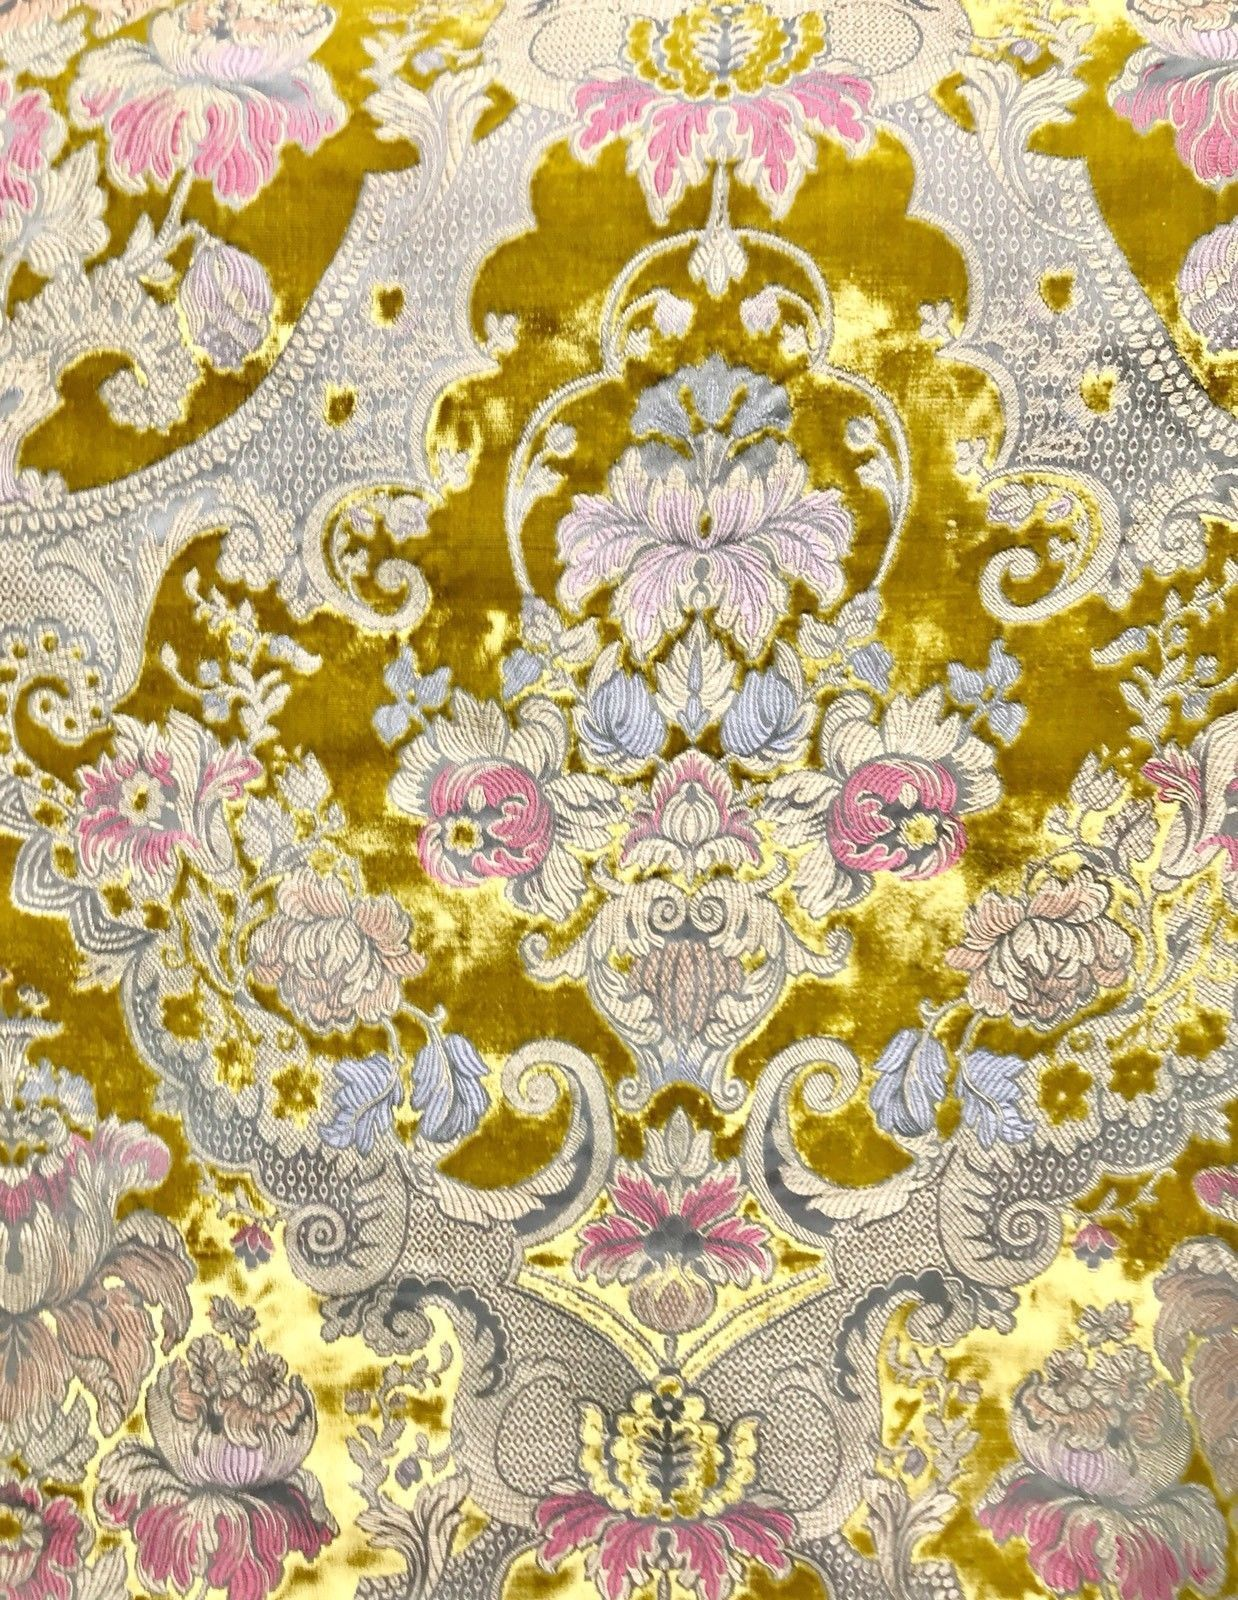 Swatch Made In Italy Burnout Damask Velvet Upholstery Versailles Fabric Yellow Fancy Styles Fabric Boutique In 2020 Velvet Upholstery Fabric Upholstry Fabric Damask